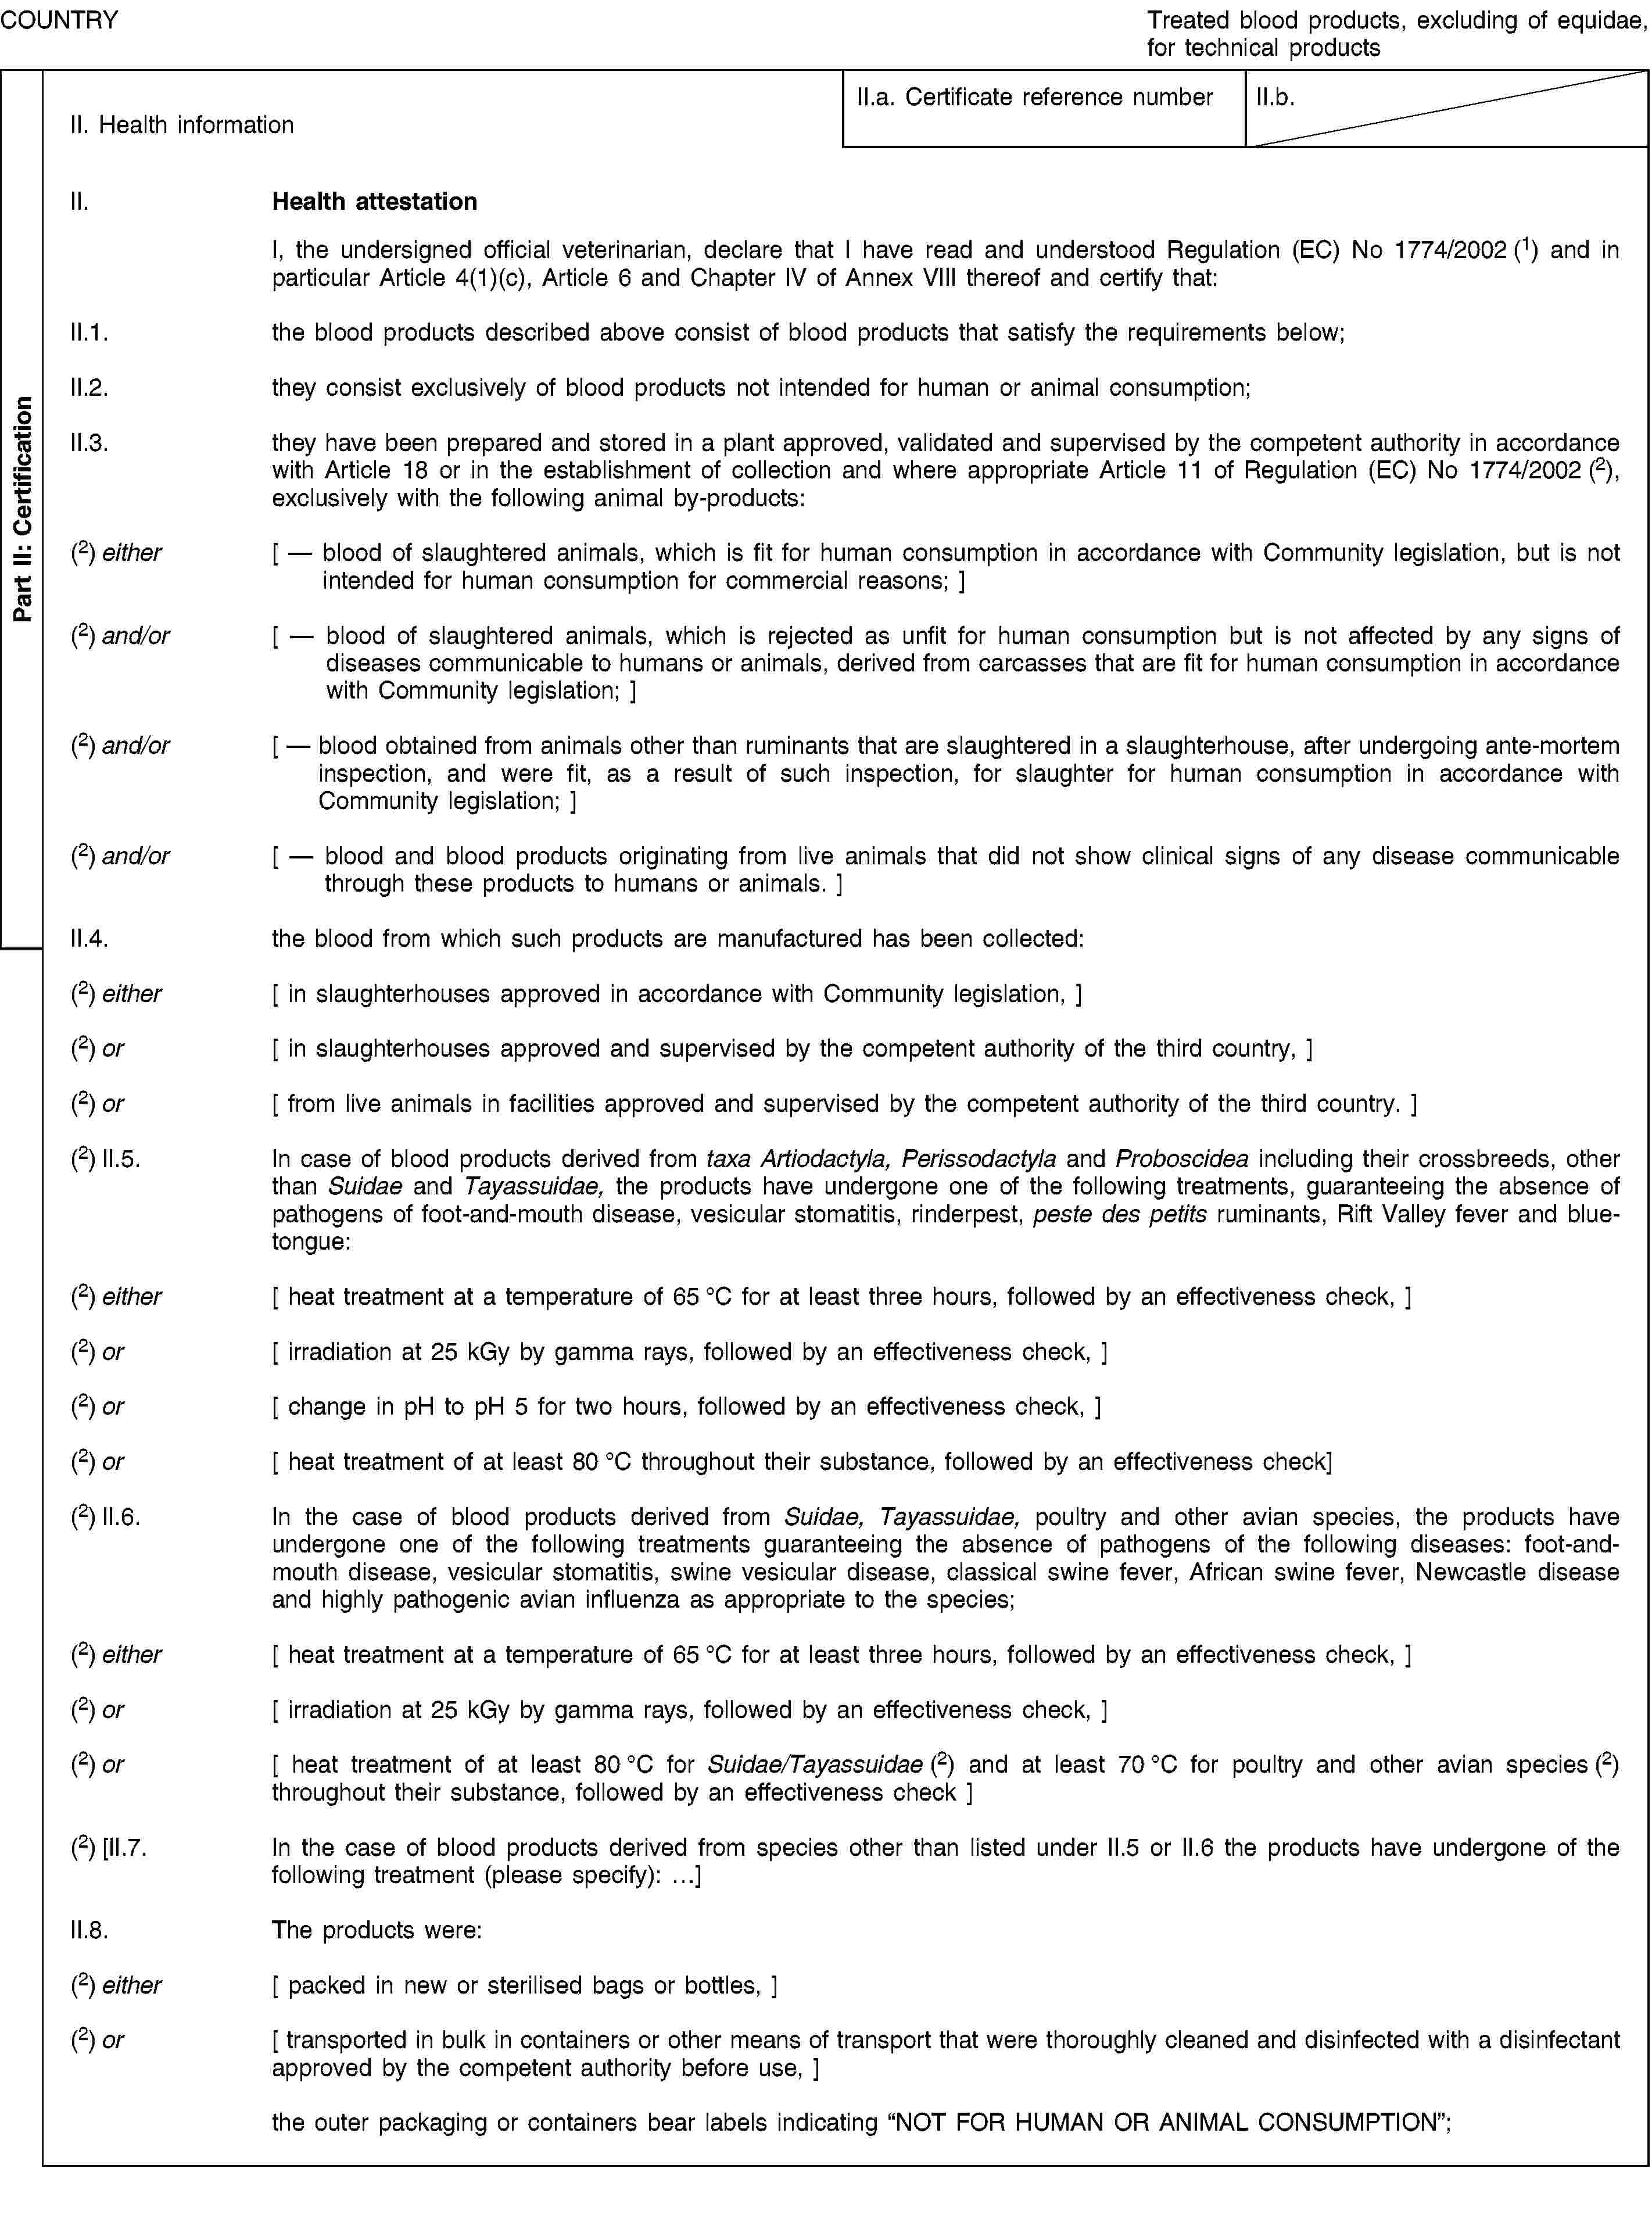 Part II: CertificationCOUNTRYTreated blood products, excluding of equidae, for technical productsII. Health informationII.a. Certificate reference numberII.b.II. Health attestationI, the undersigned official veterinarian, declare that I have read and understood Regulation (EC) No 1774/2002 (1) and in particular Article 4(1)(c), Article 6 and Chapter IV of Annex VIII thereof and certify that:II.1. the blood products described above consist of blood products that satisfy the requirements below;II.2. they consist exclusively of blood products not intended for human or animal consumption;II.3. they have been prepared and stored in a plant approved, validated and supervised by the competent authority in accordance with Article 18 or in the establishment of collection and where appropriate Article 11 of Regulation (EC) No 1774/2002 (2), exclusively with the following animal by-products:(2) either [ — blood of slaughtered animals, which is fit for human consumption in accordance with Community legislation, but is not intended for human consumption for commercial reasons; ](2) and/or [ — blood of slaughtered animals, which is rejected as unfit for human consumption but is not affected by any signs of diseases communicable to humans or animals, derived from carcasses that are fit for human consumption in accordance with Community legislation; ](2) and/or [ — blood obtained from animals other than ruminants that are slaughtered in a slaughterhouse, after undergoing ante-mortem inspection, and were fit, as a result of such inspection, for slaughter for human consumption in accordance with Community legislation; ](2) and/or [ — blood and blood products originating from live animals that did not show clinical signs of any disease communicable through these products to humans or animals. ]II.4. the blood from which such products are manufactured has been collected:(2) either [ in slaughterhouses approved in accordance with Community legislation, ](2) or [ in slaughterhouses appro